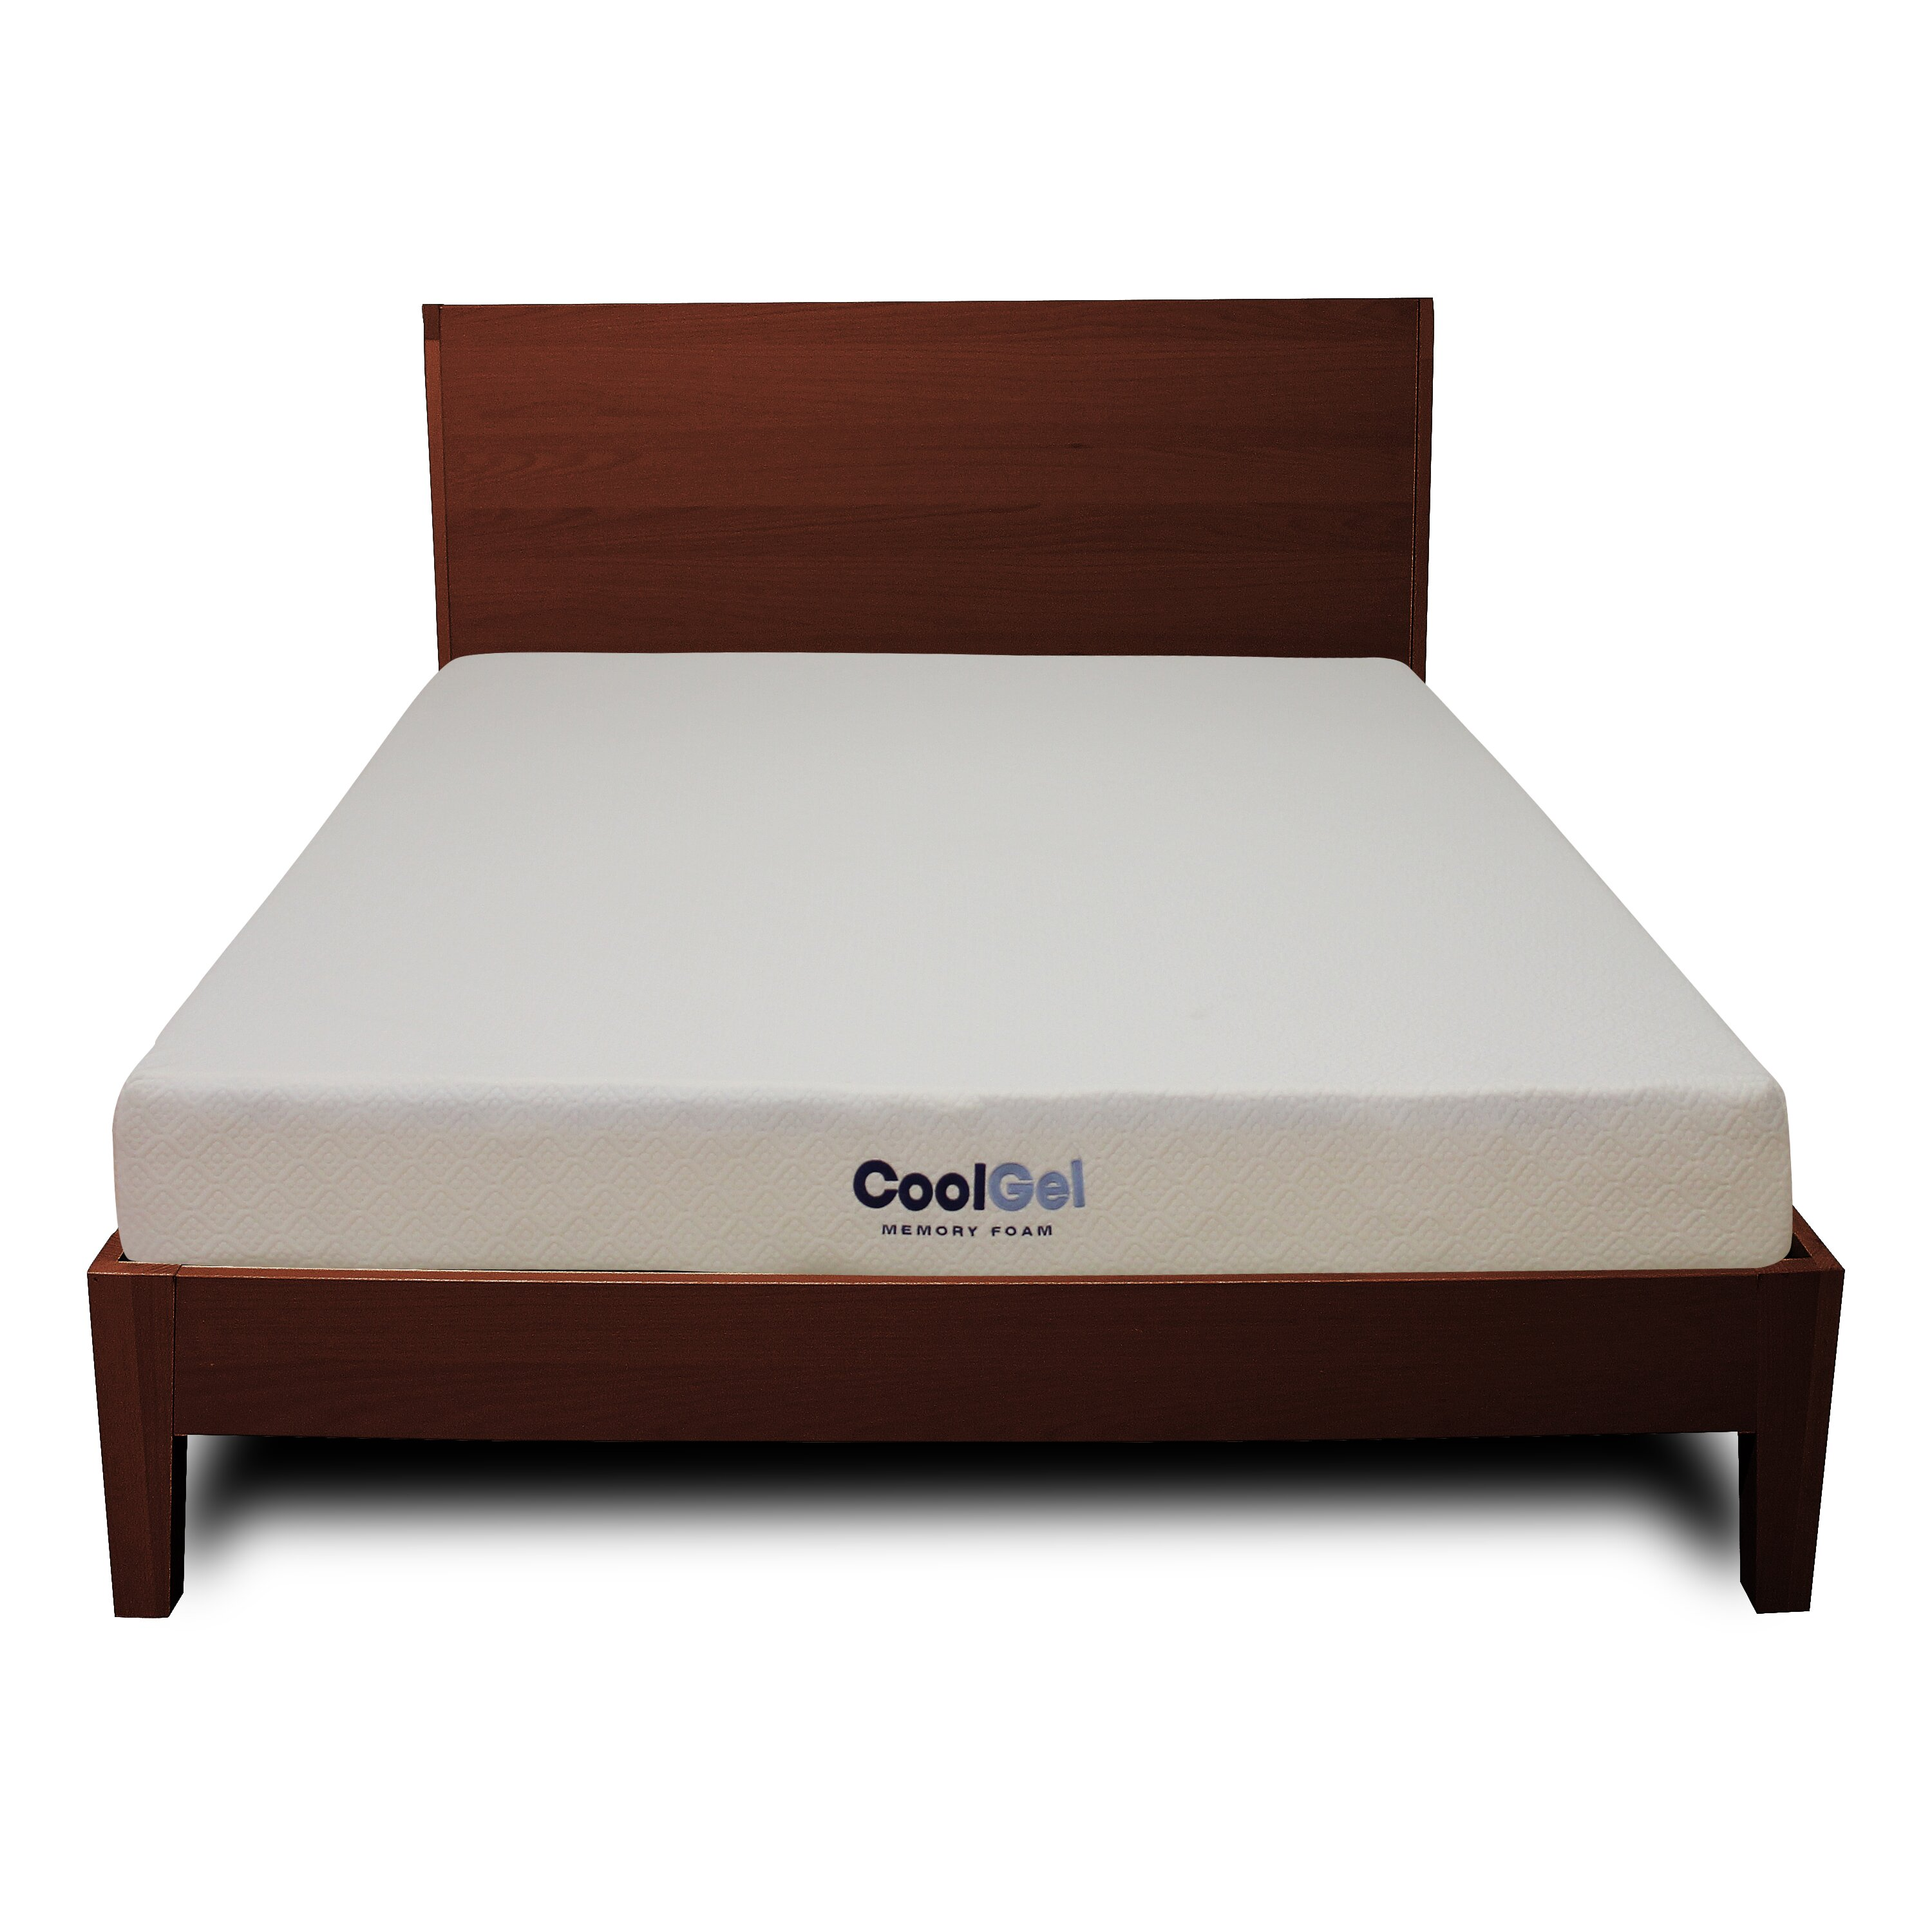 classic brands memory foam mattress reviews